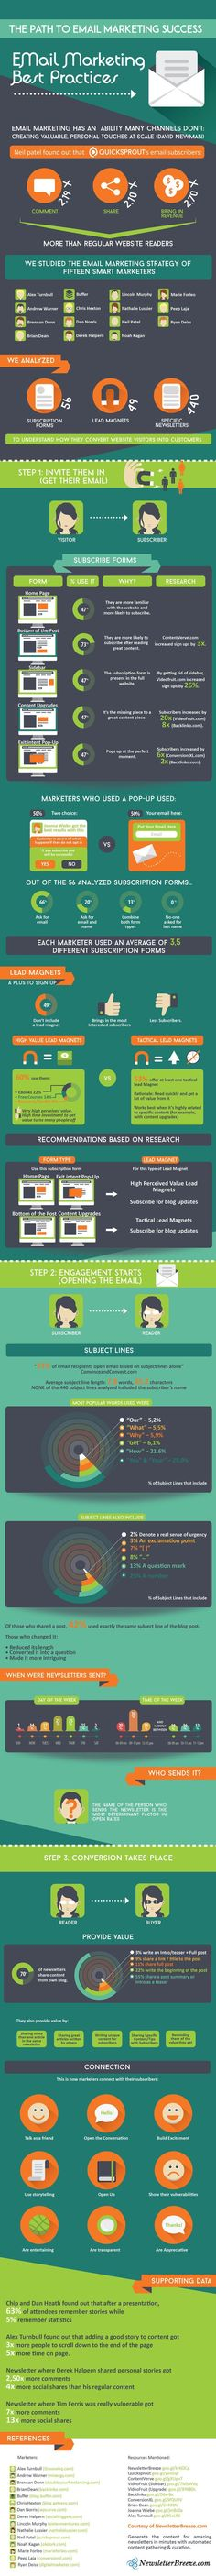 The path to email marketing success.